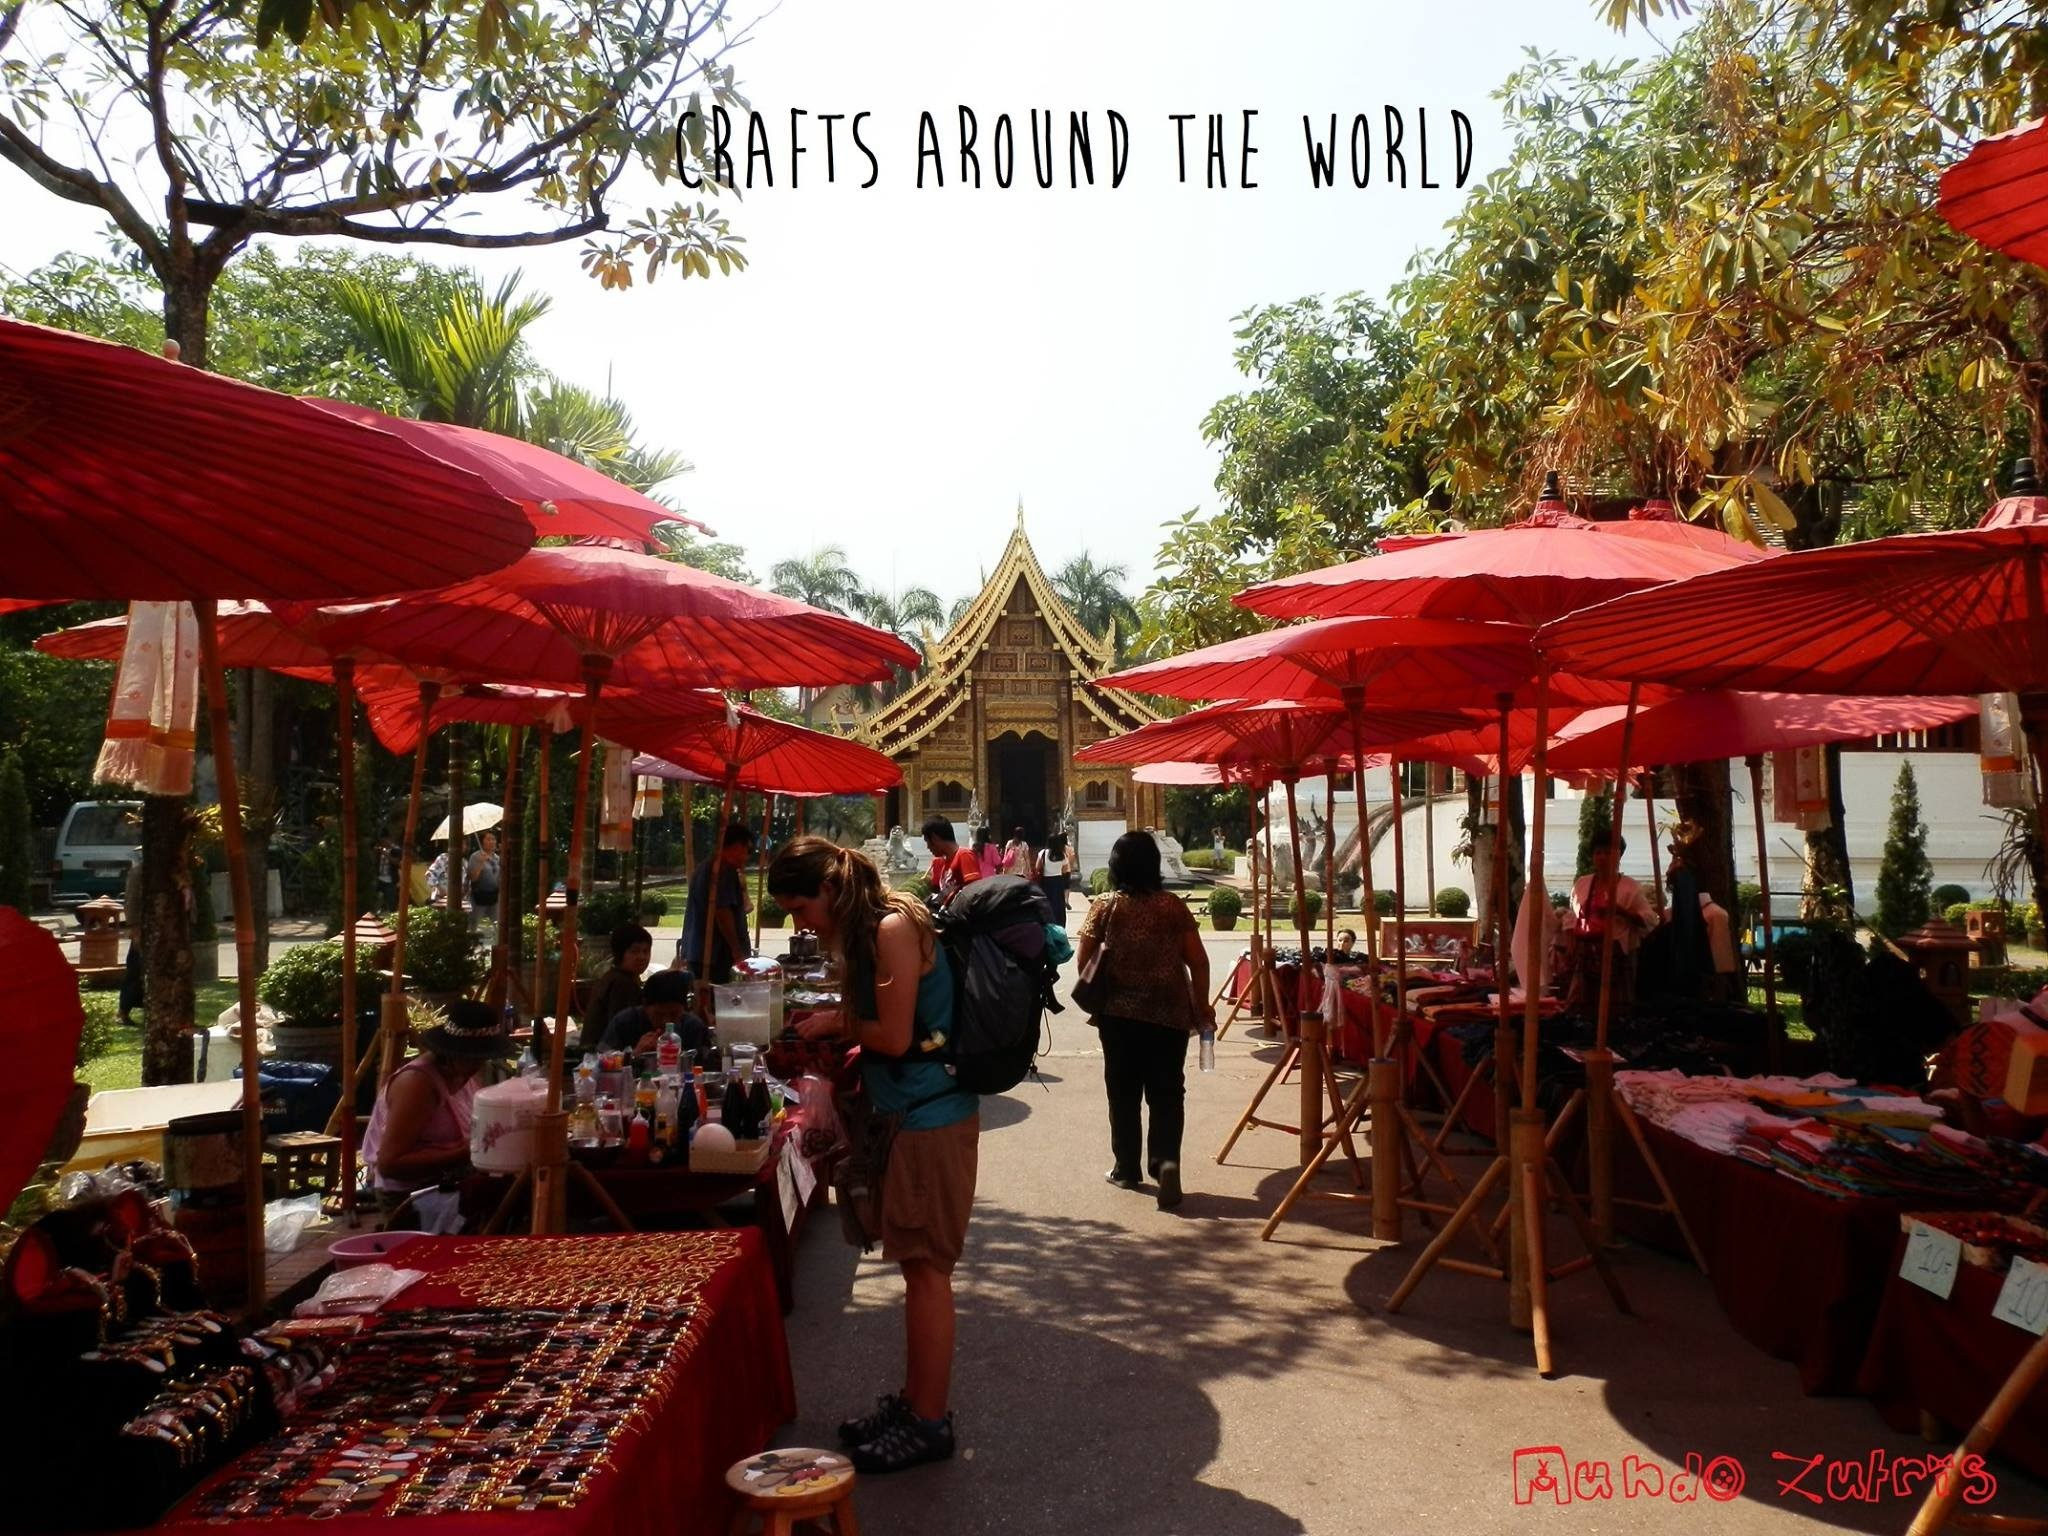 SATURDAY WALKING MARKET (Chiang Mai, Thailand) - CRAFTS AROUND THE WORLD